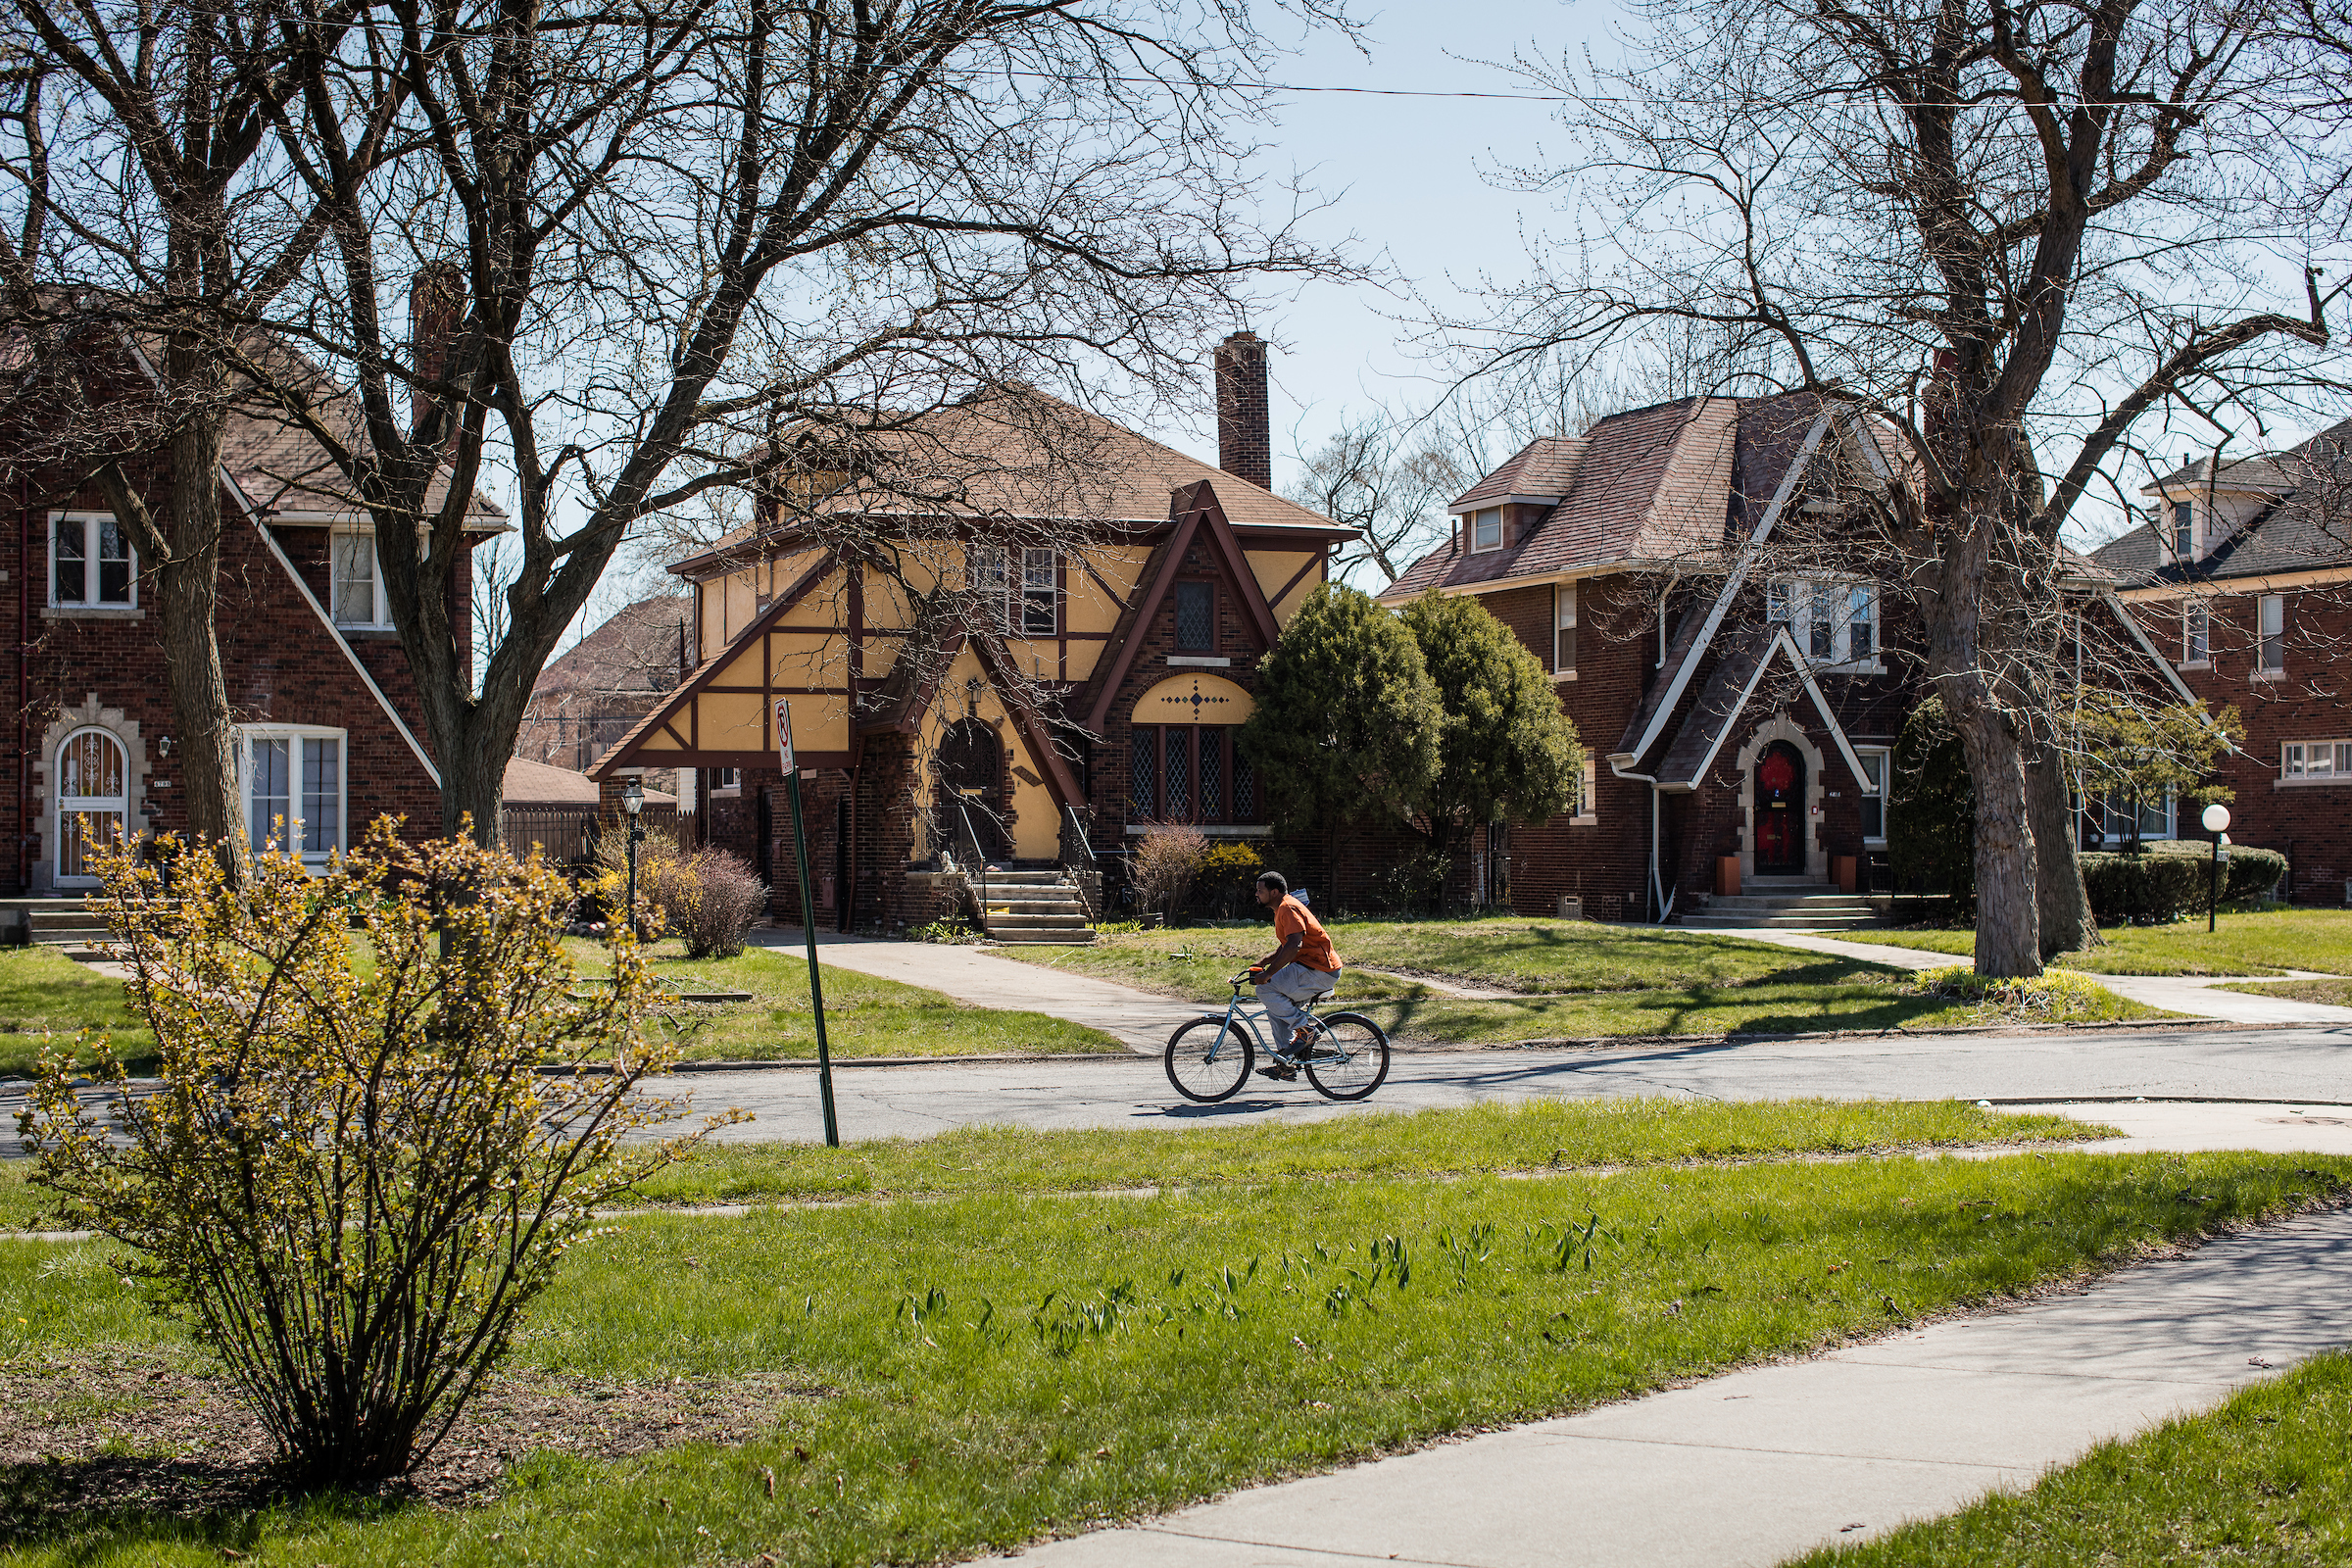 A boy rides a bike down a street lined with attractive brick homes.